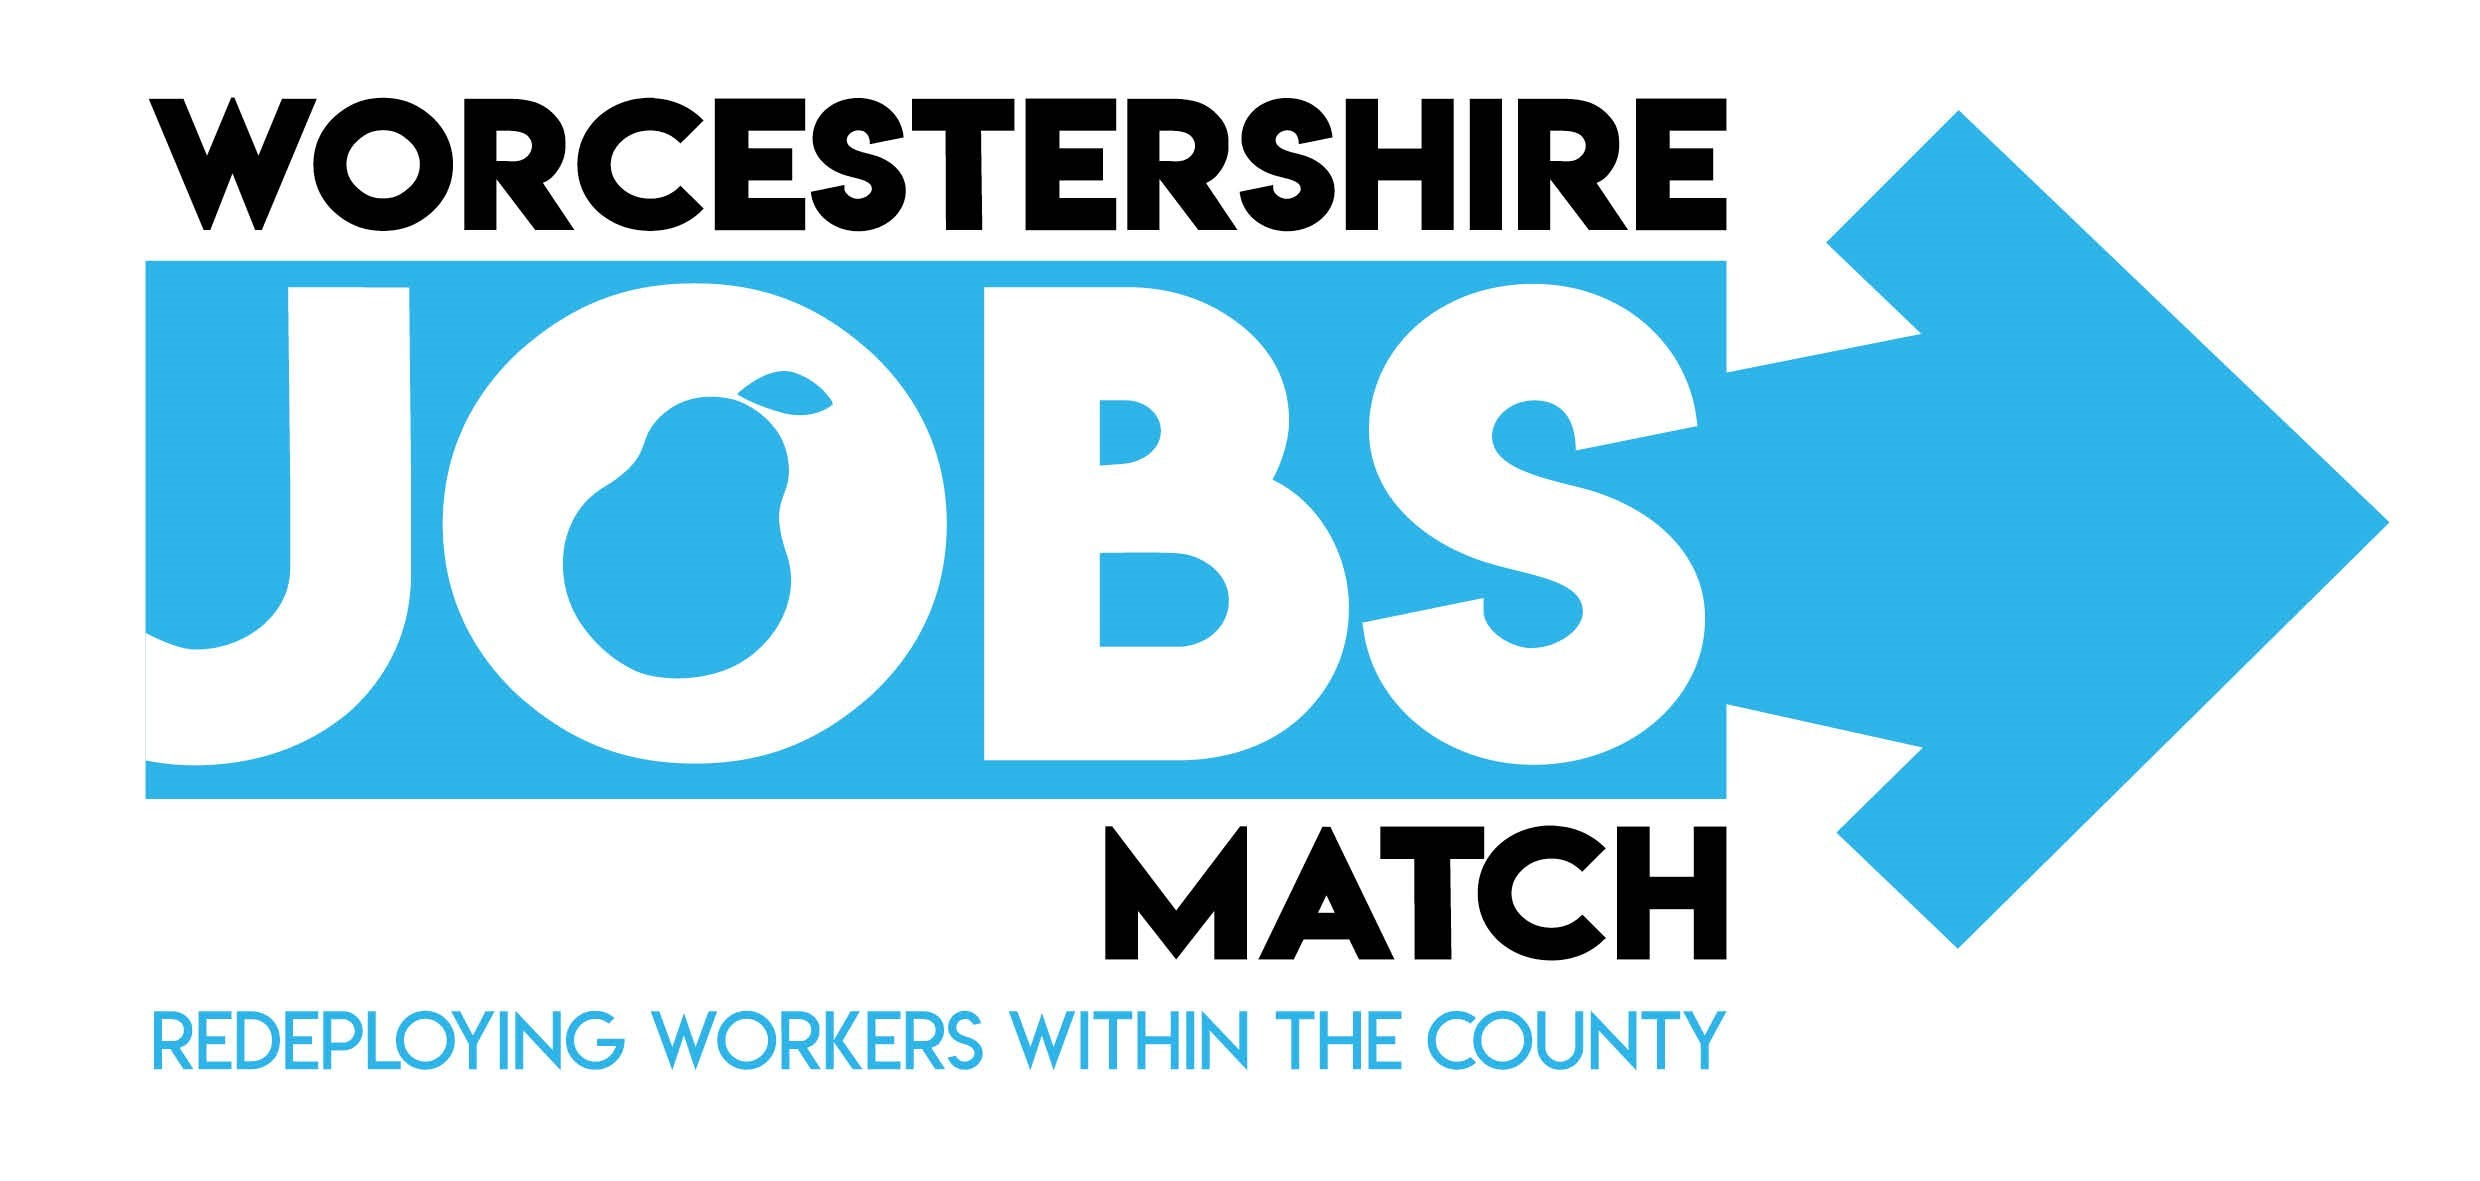 Introducing Worcestershire Jobs Match